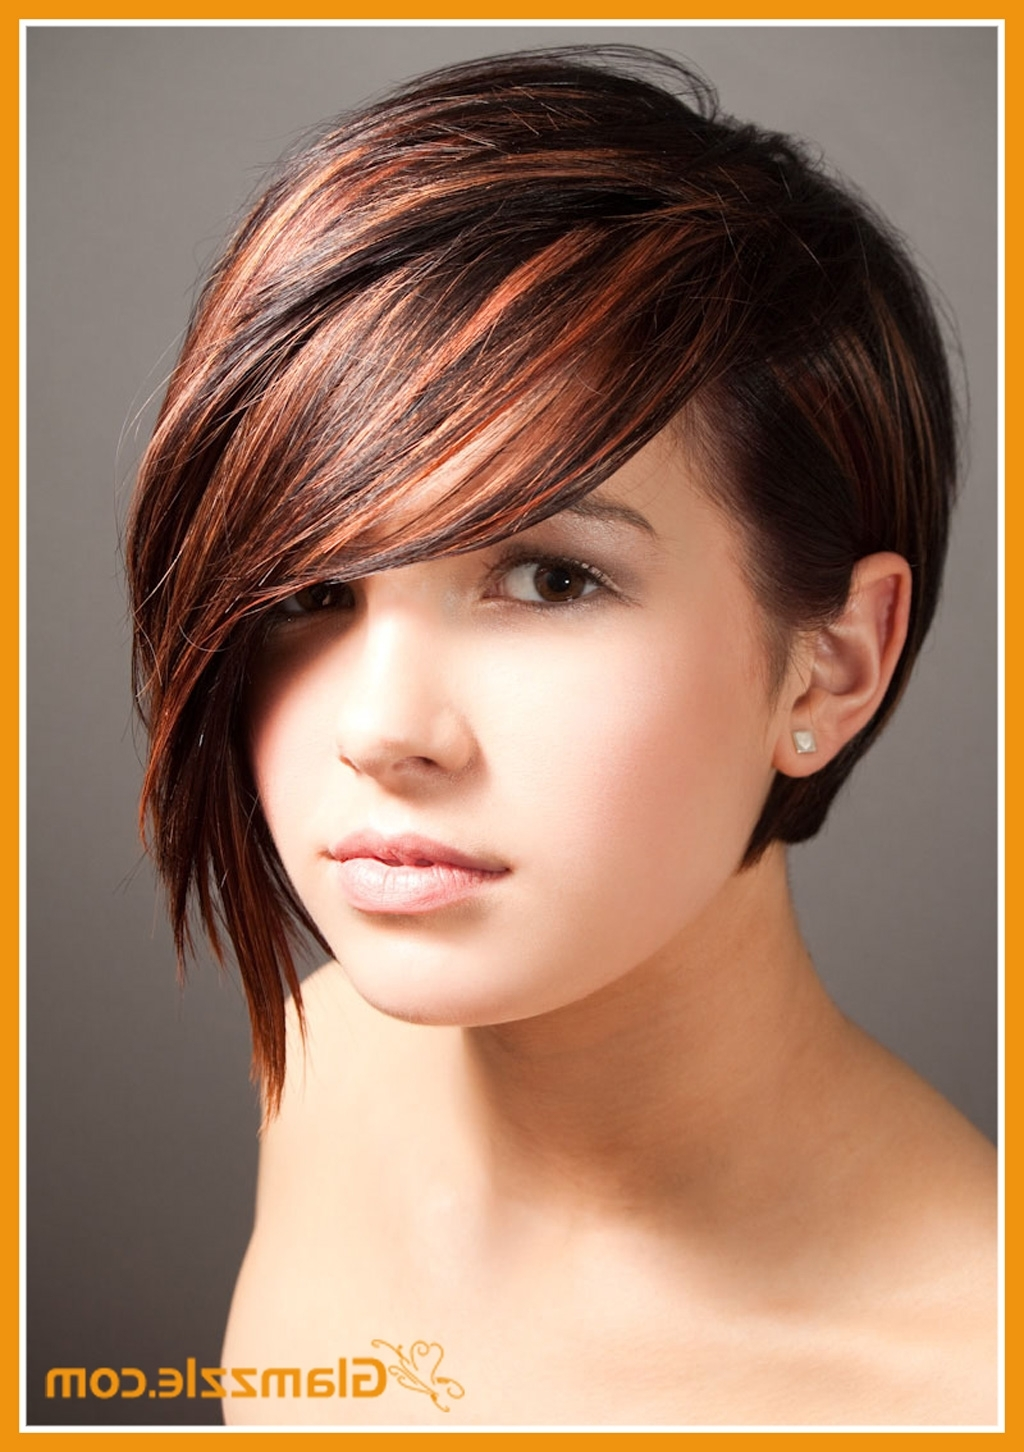 Top Three Great Ideas For Female Short Hairstyles | Hairstyle Regarding Newest Pixie Hairstyles With Long Fringe (View 12 of 15)